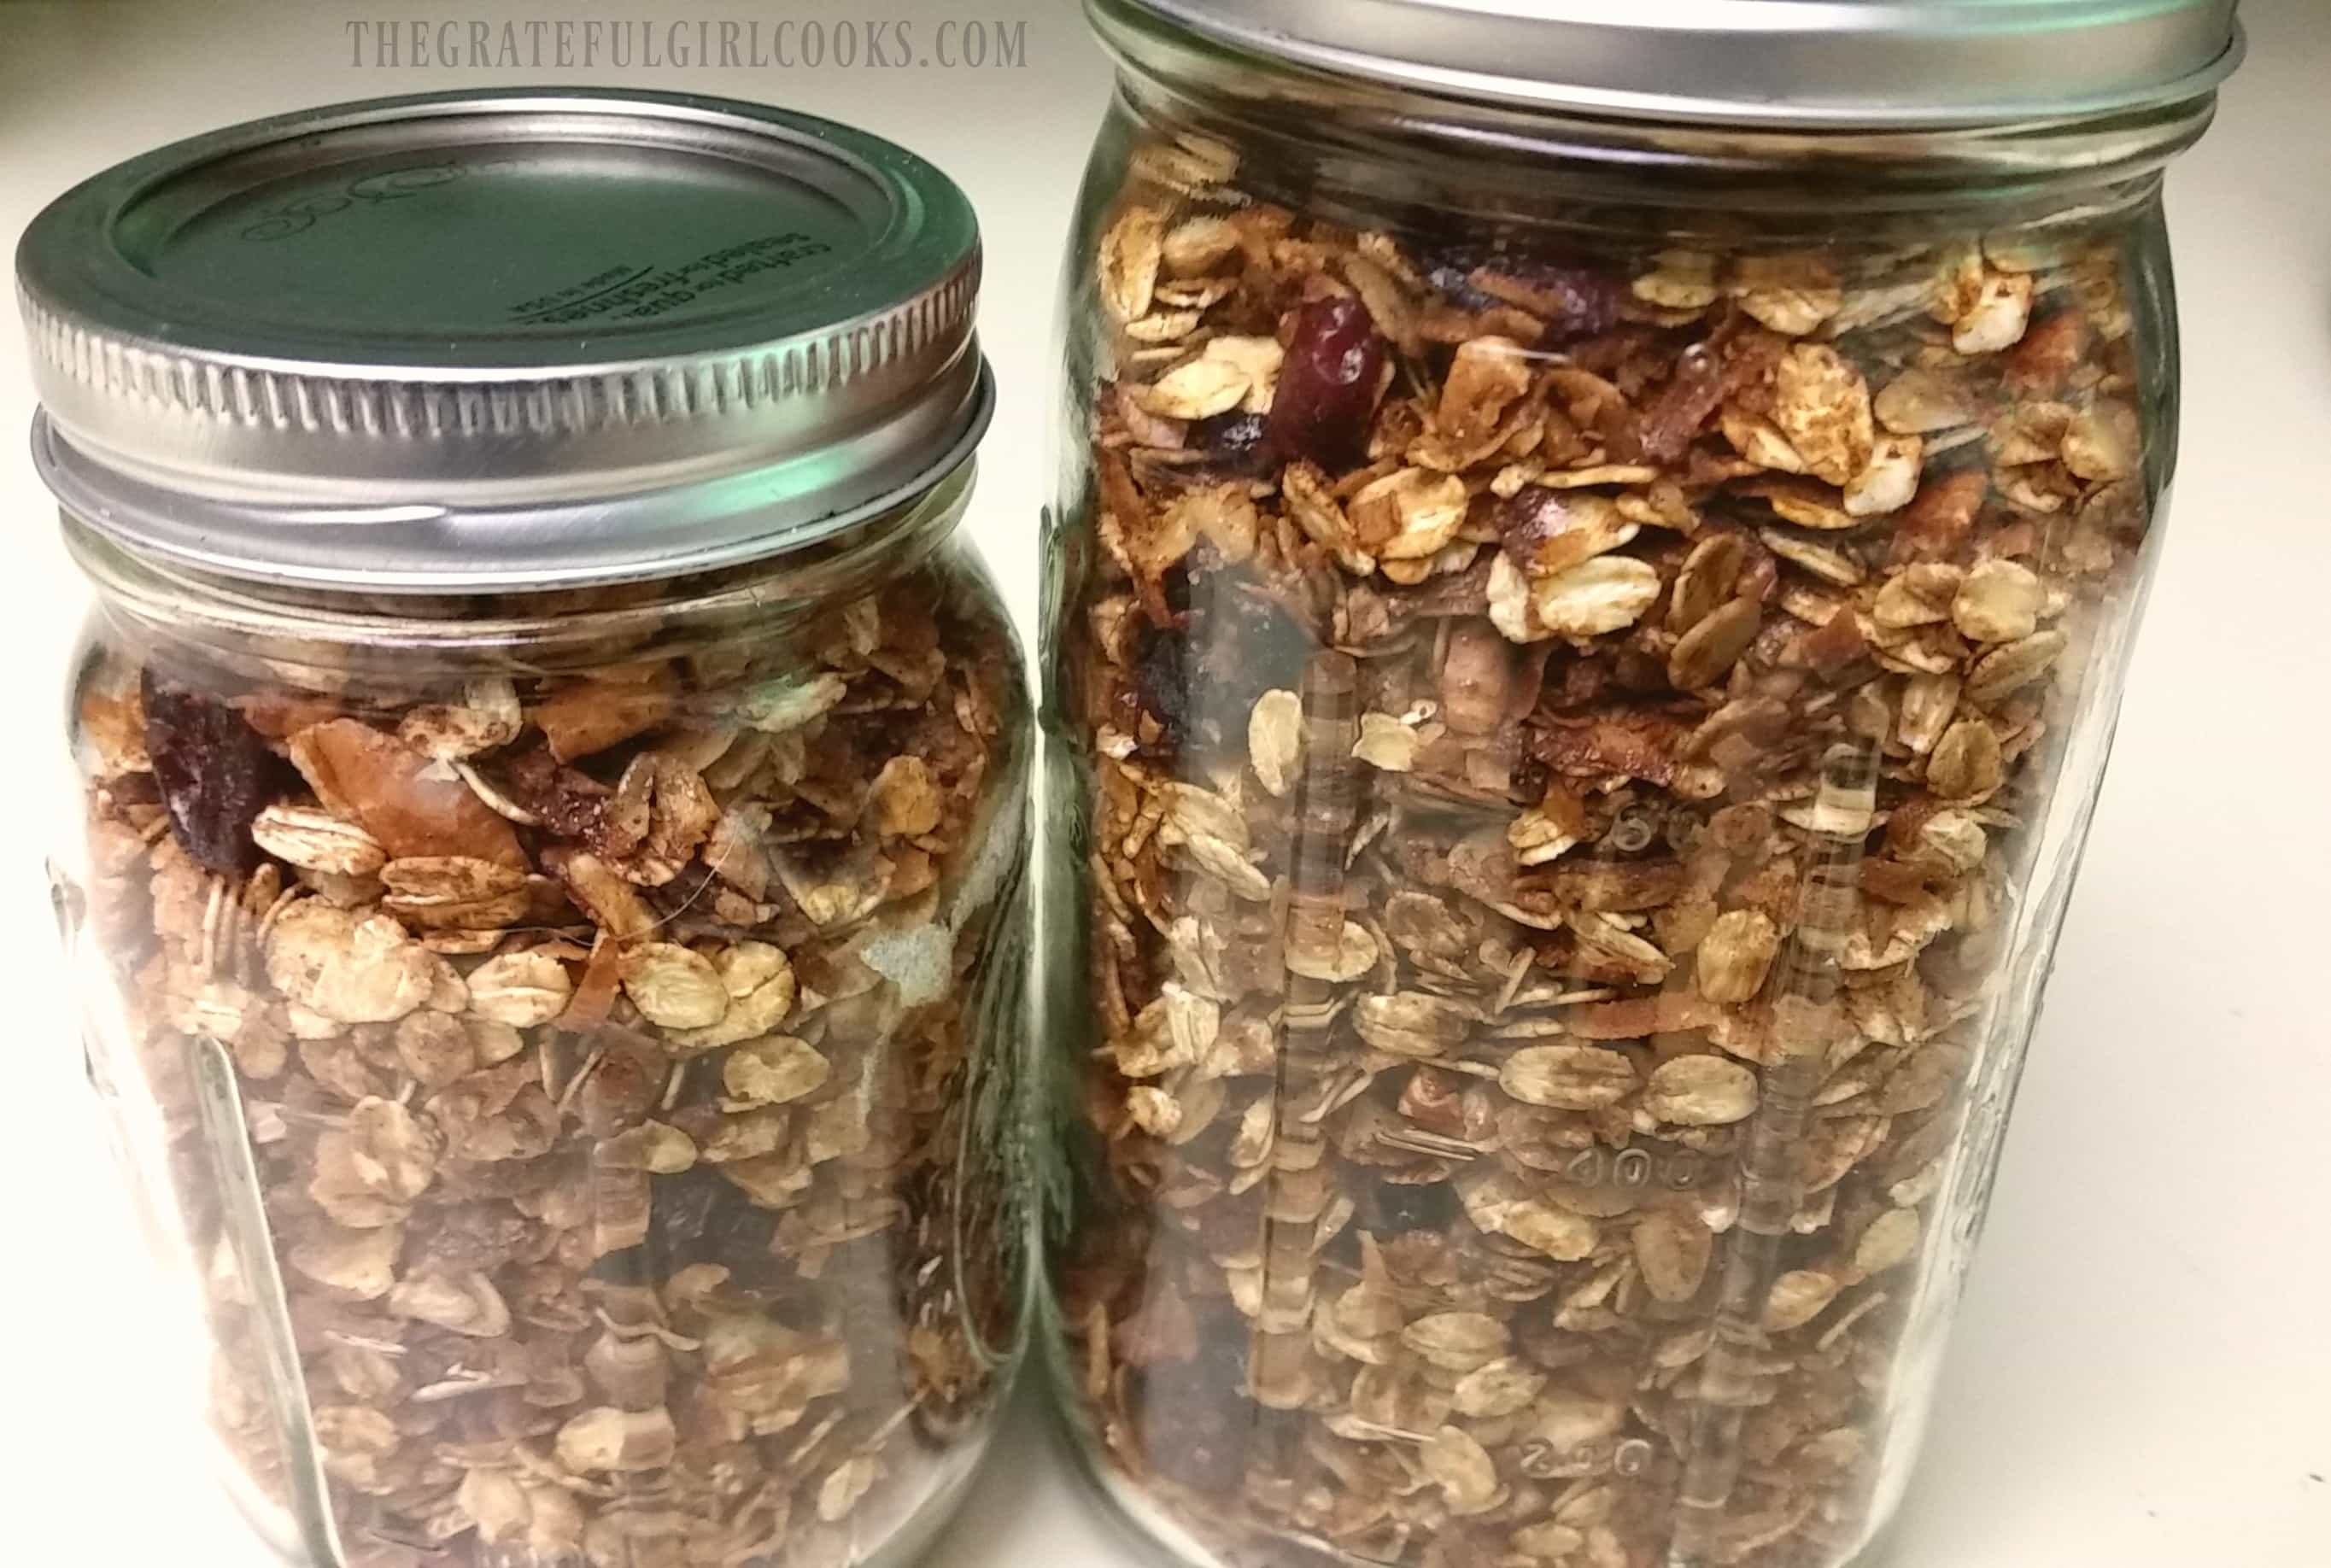 Gingerbread Granola / The Grateful Girl Cooks!